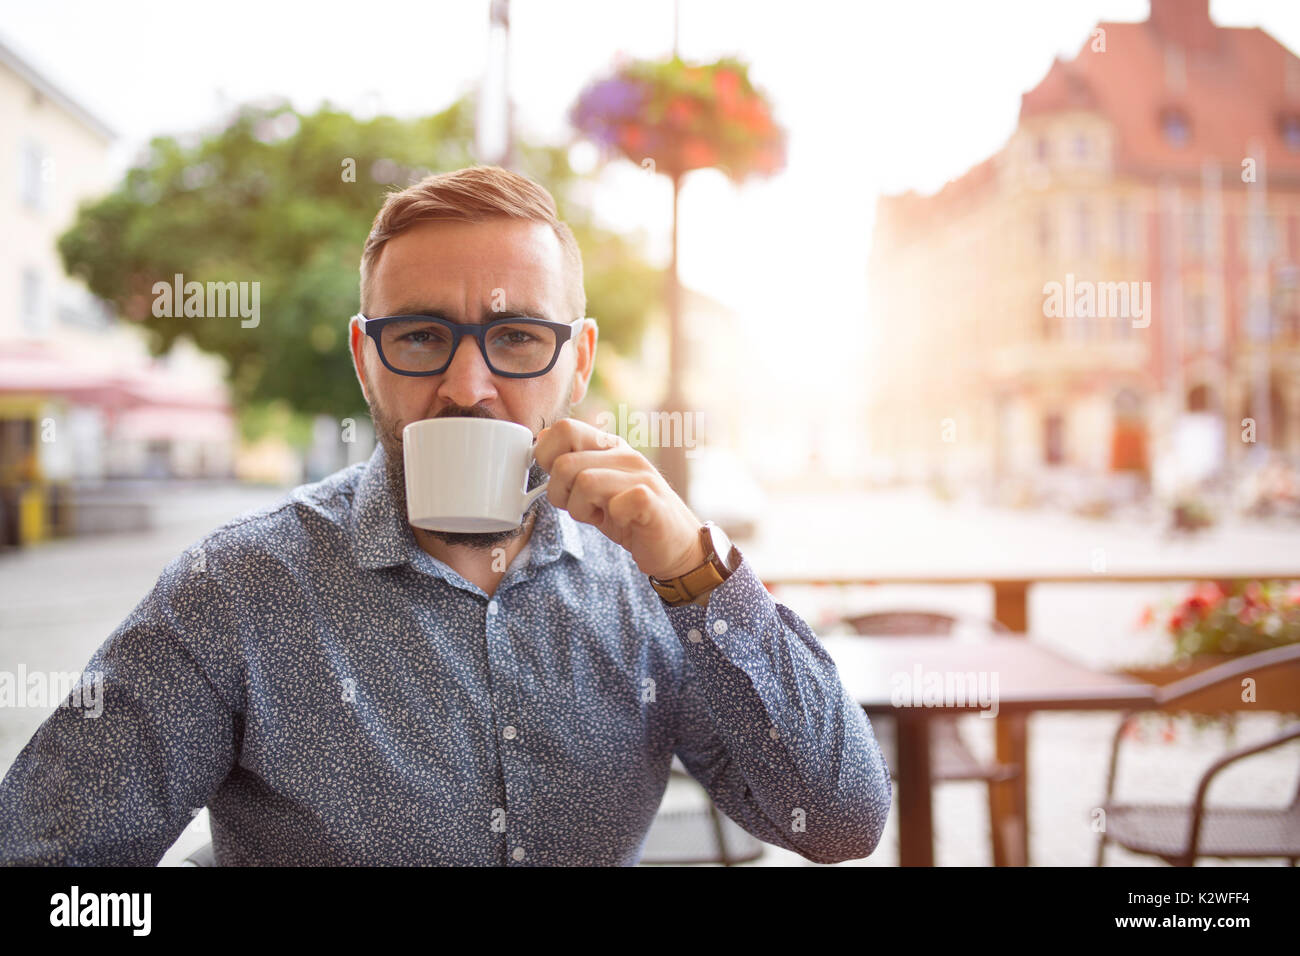 Elegant man drinking cappuccino in cafe-garden at old town - Stock Image